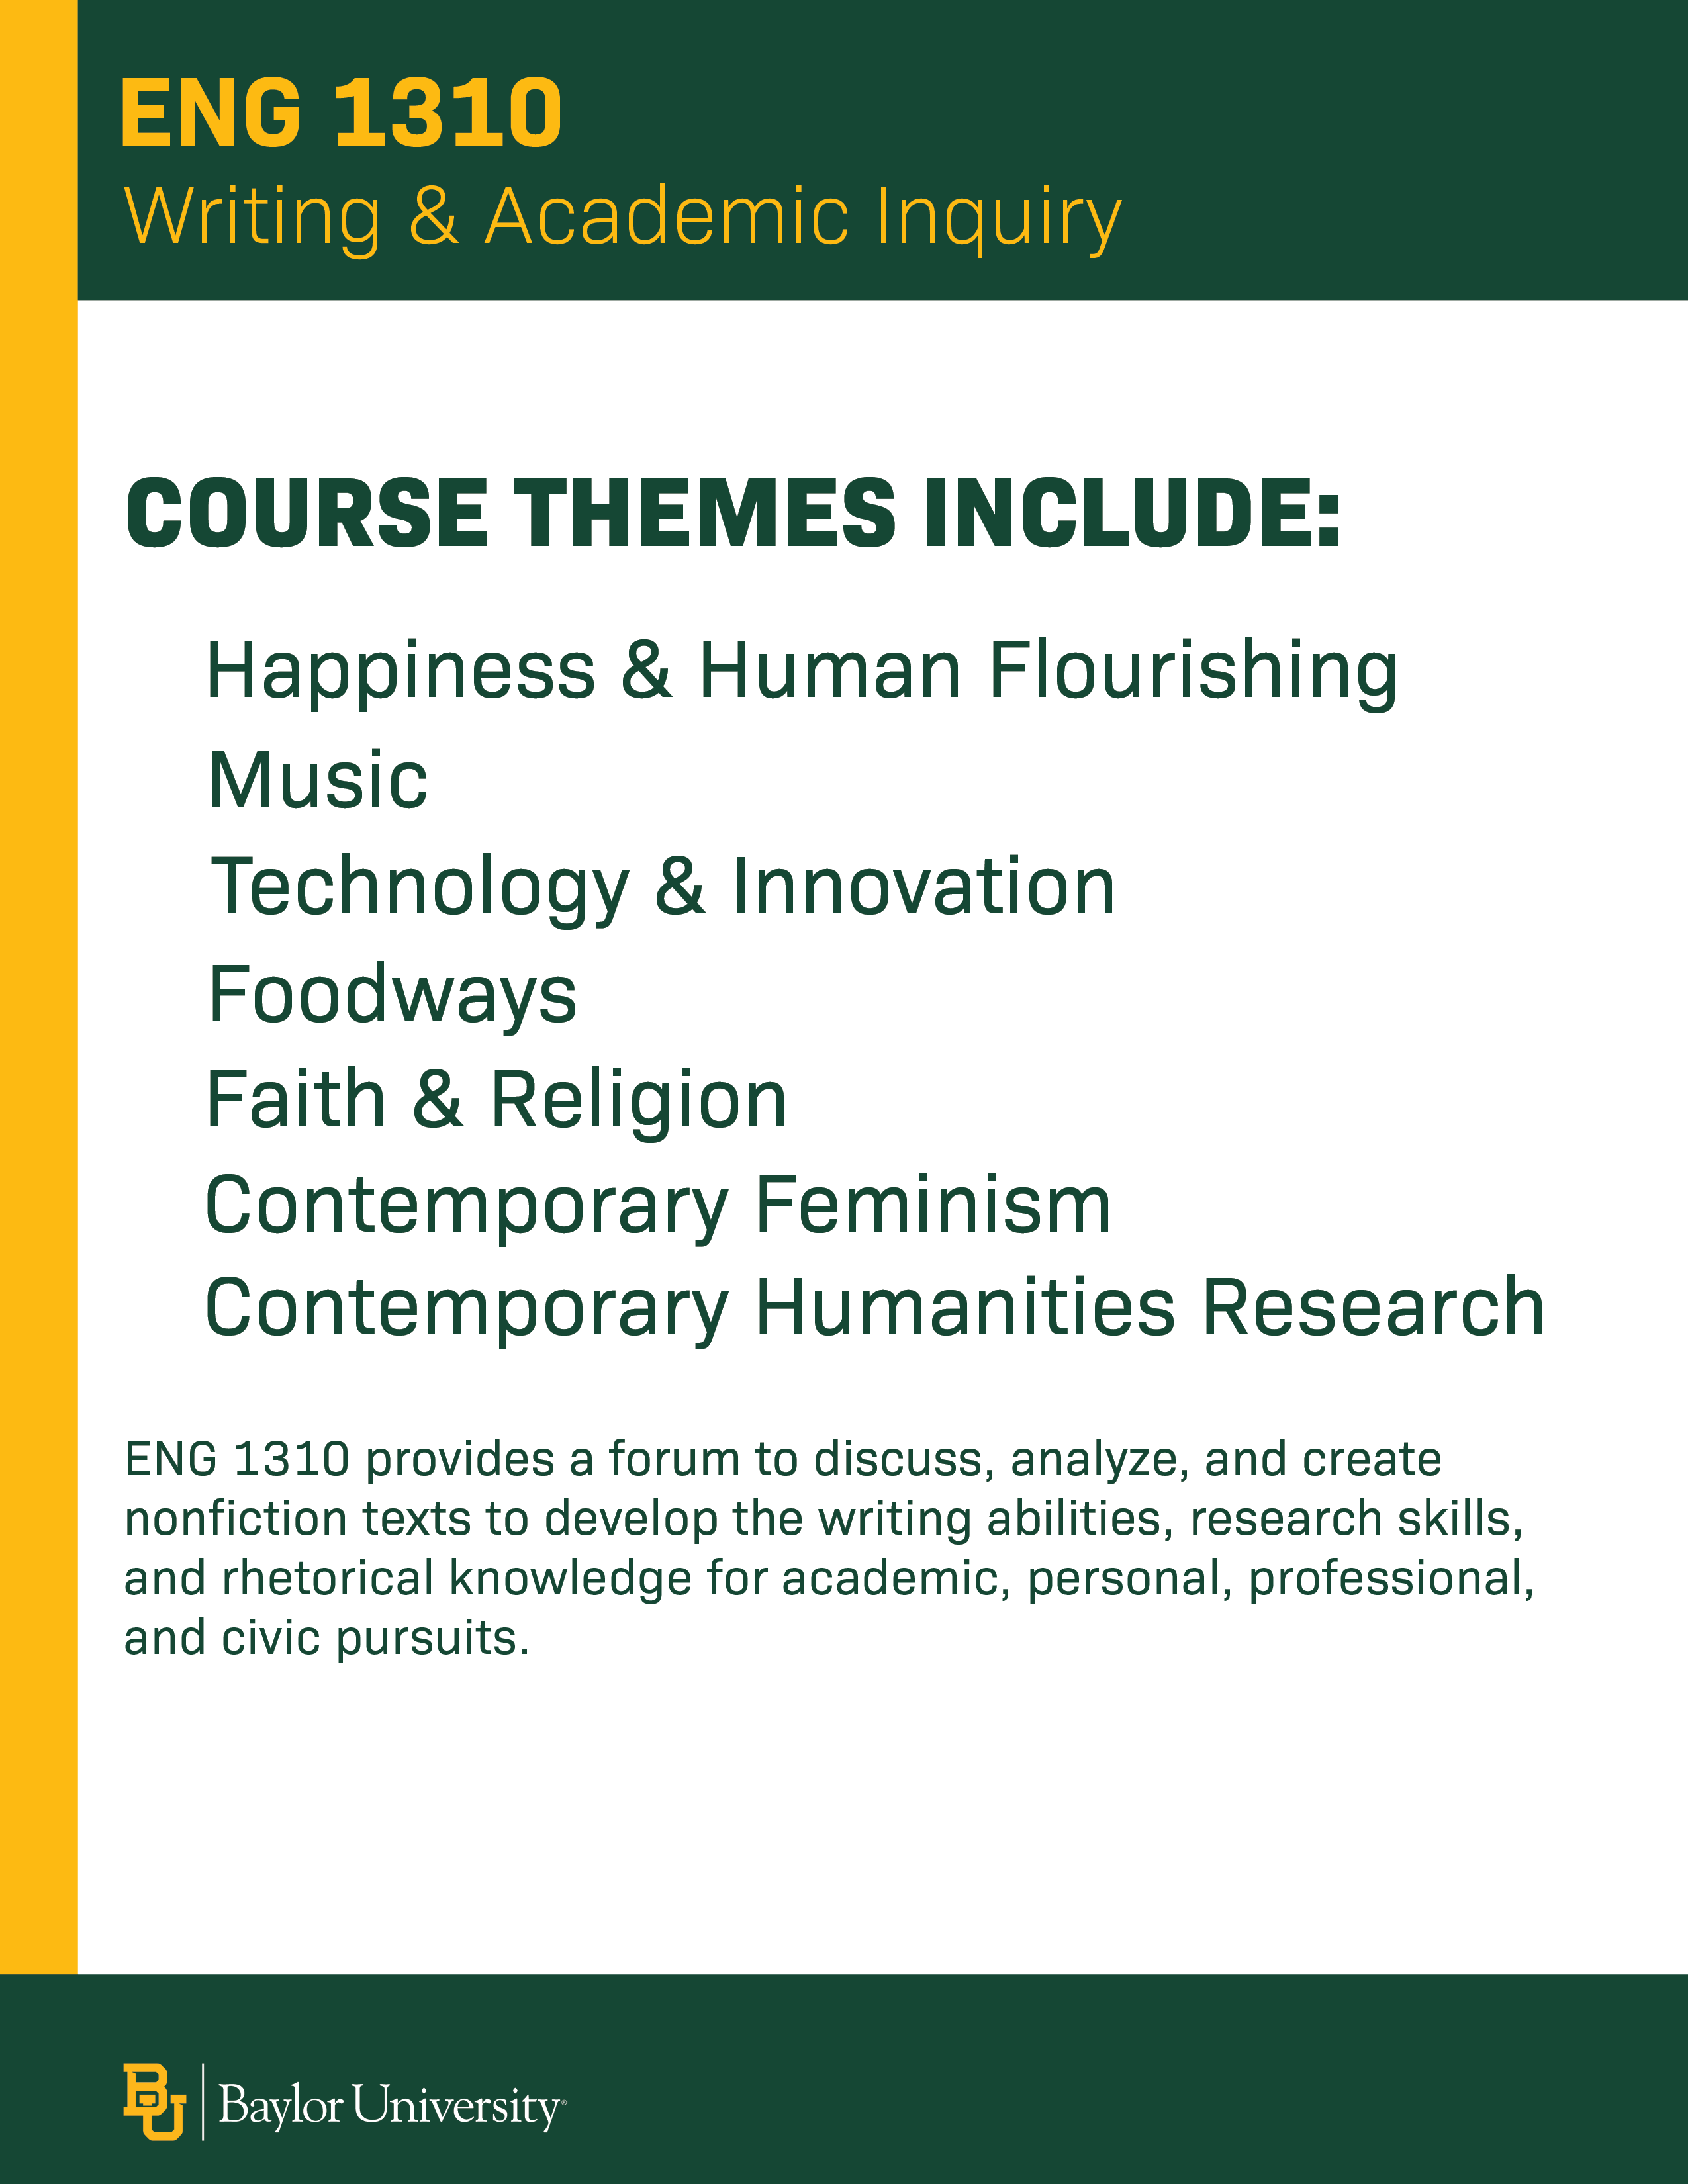 Course themes for English 1310